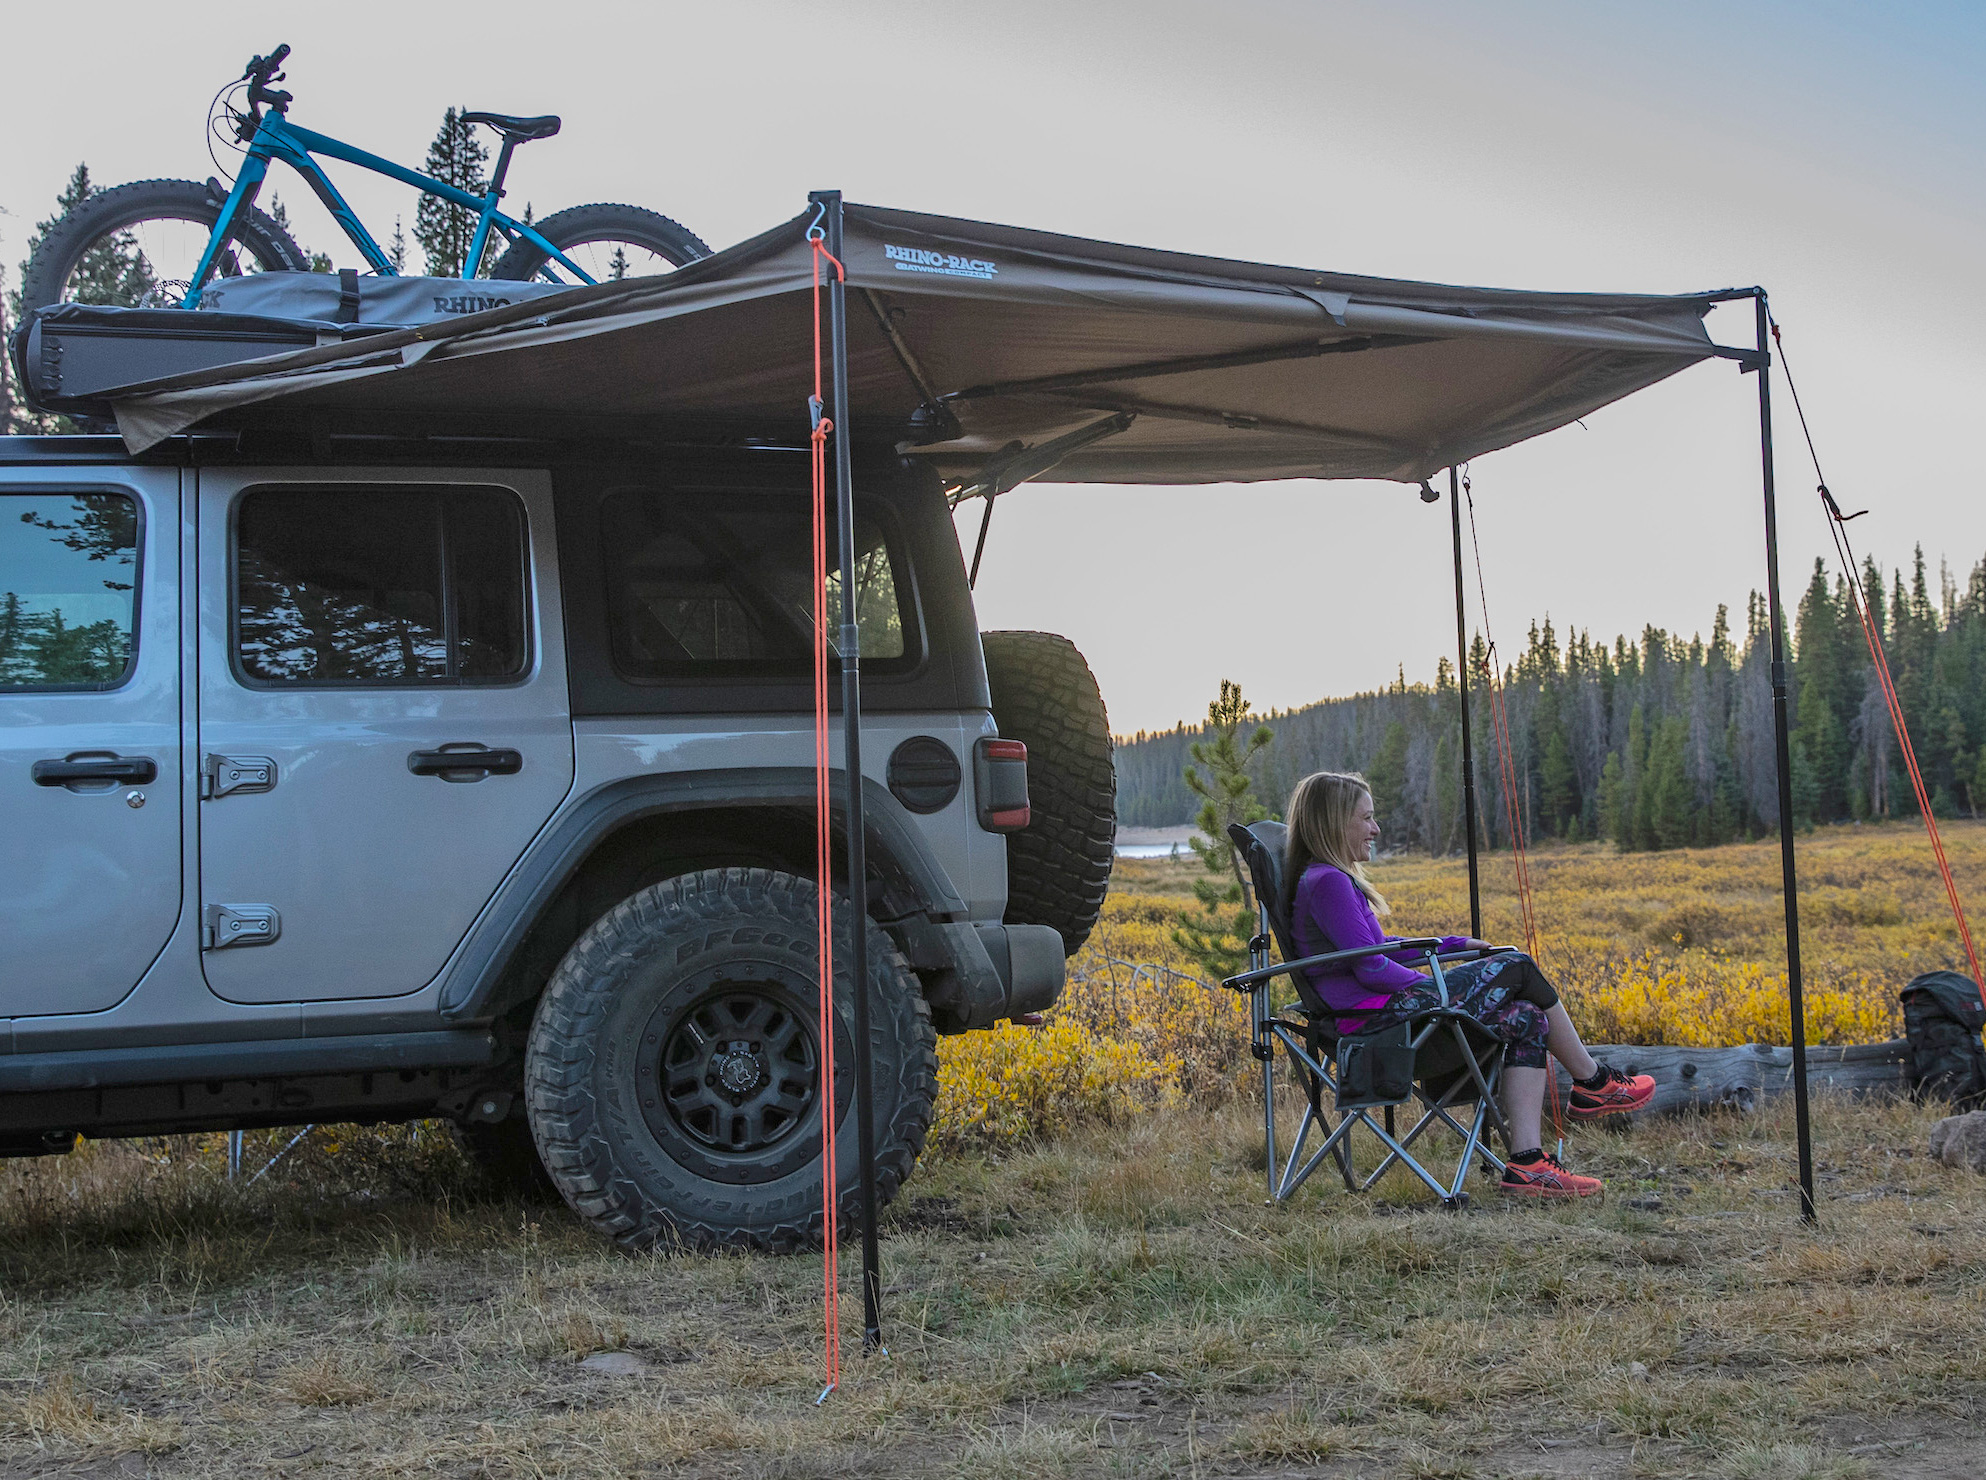 Rhino-Rack has a Wraparound Awning for your Mid-Size Adventuremobile at werd.com